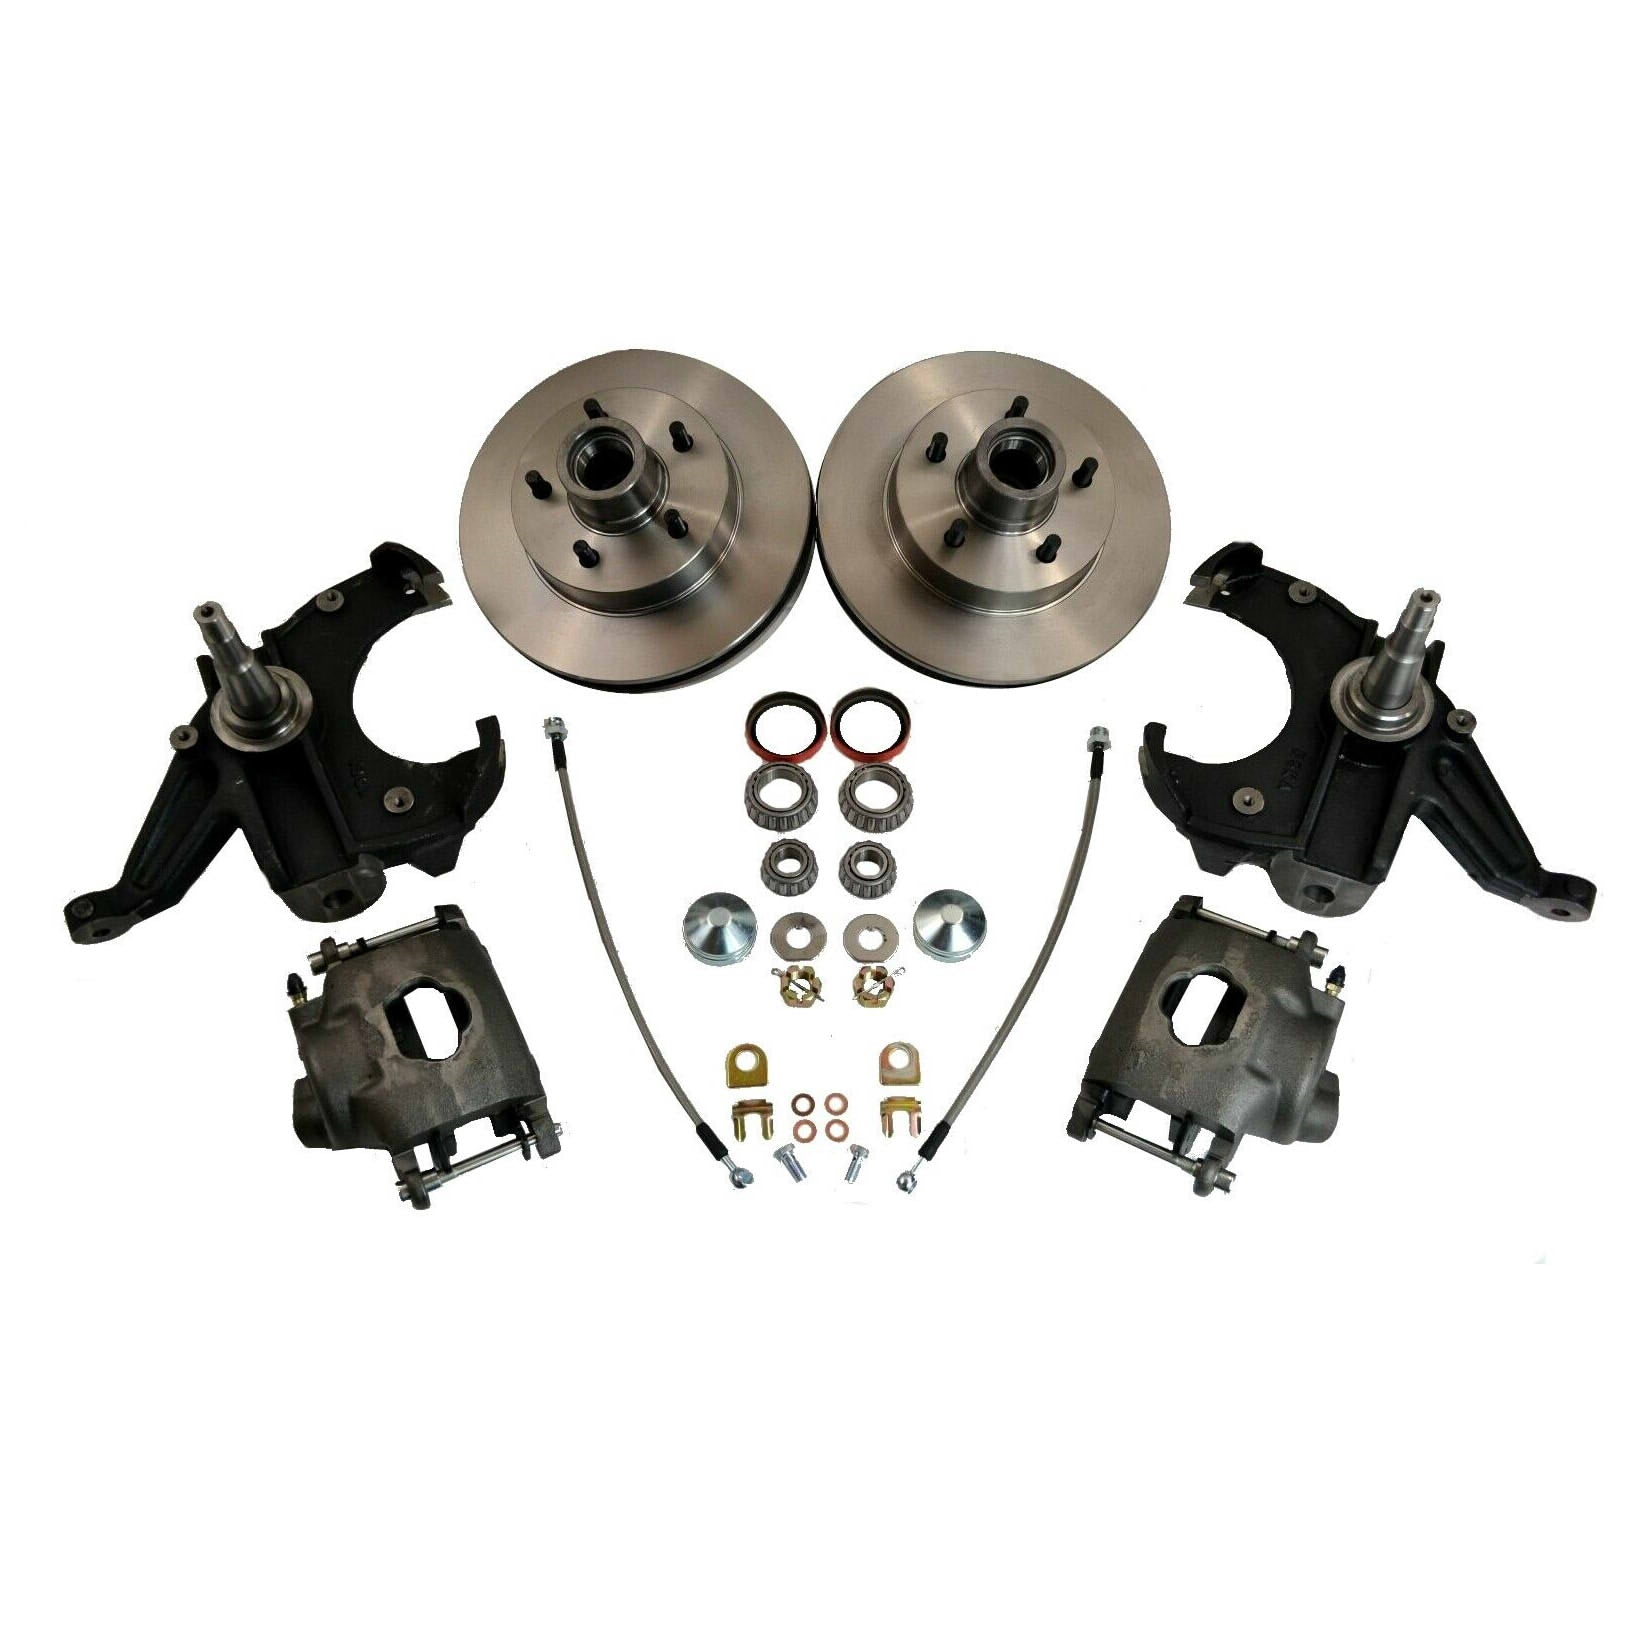 Chevrolet GM C10 C15 Truck 1973-87 Disc Brake Kit 2 5